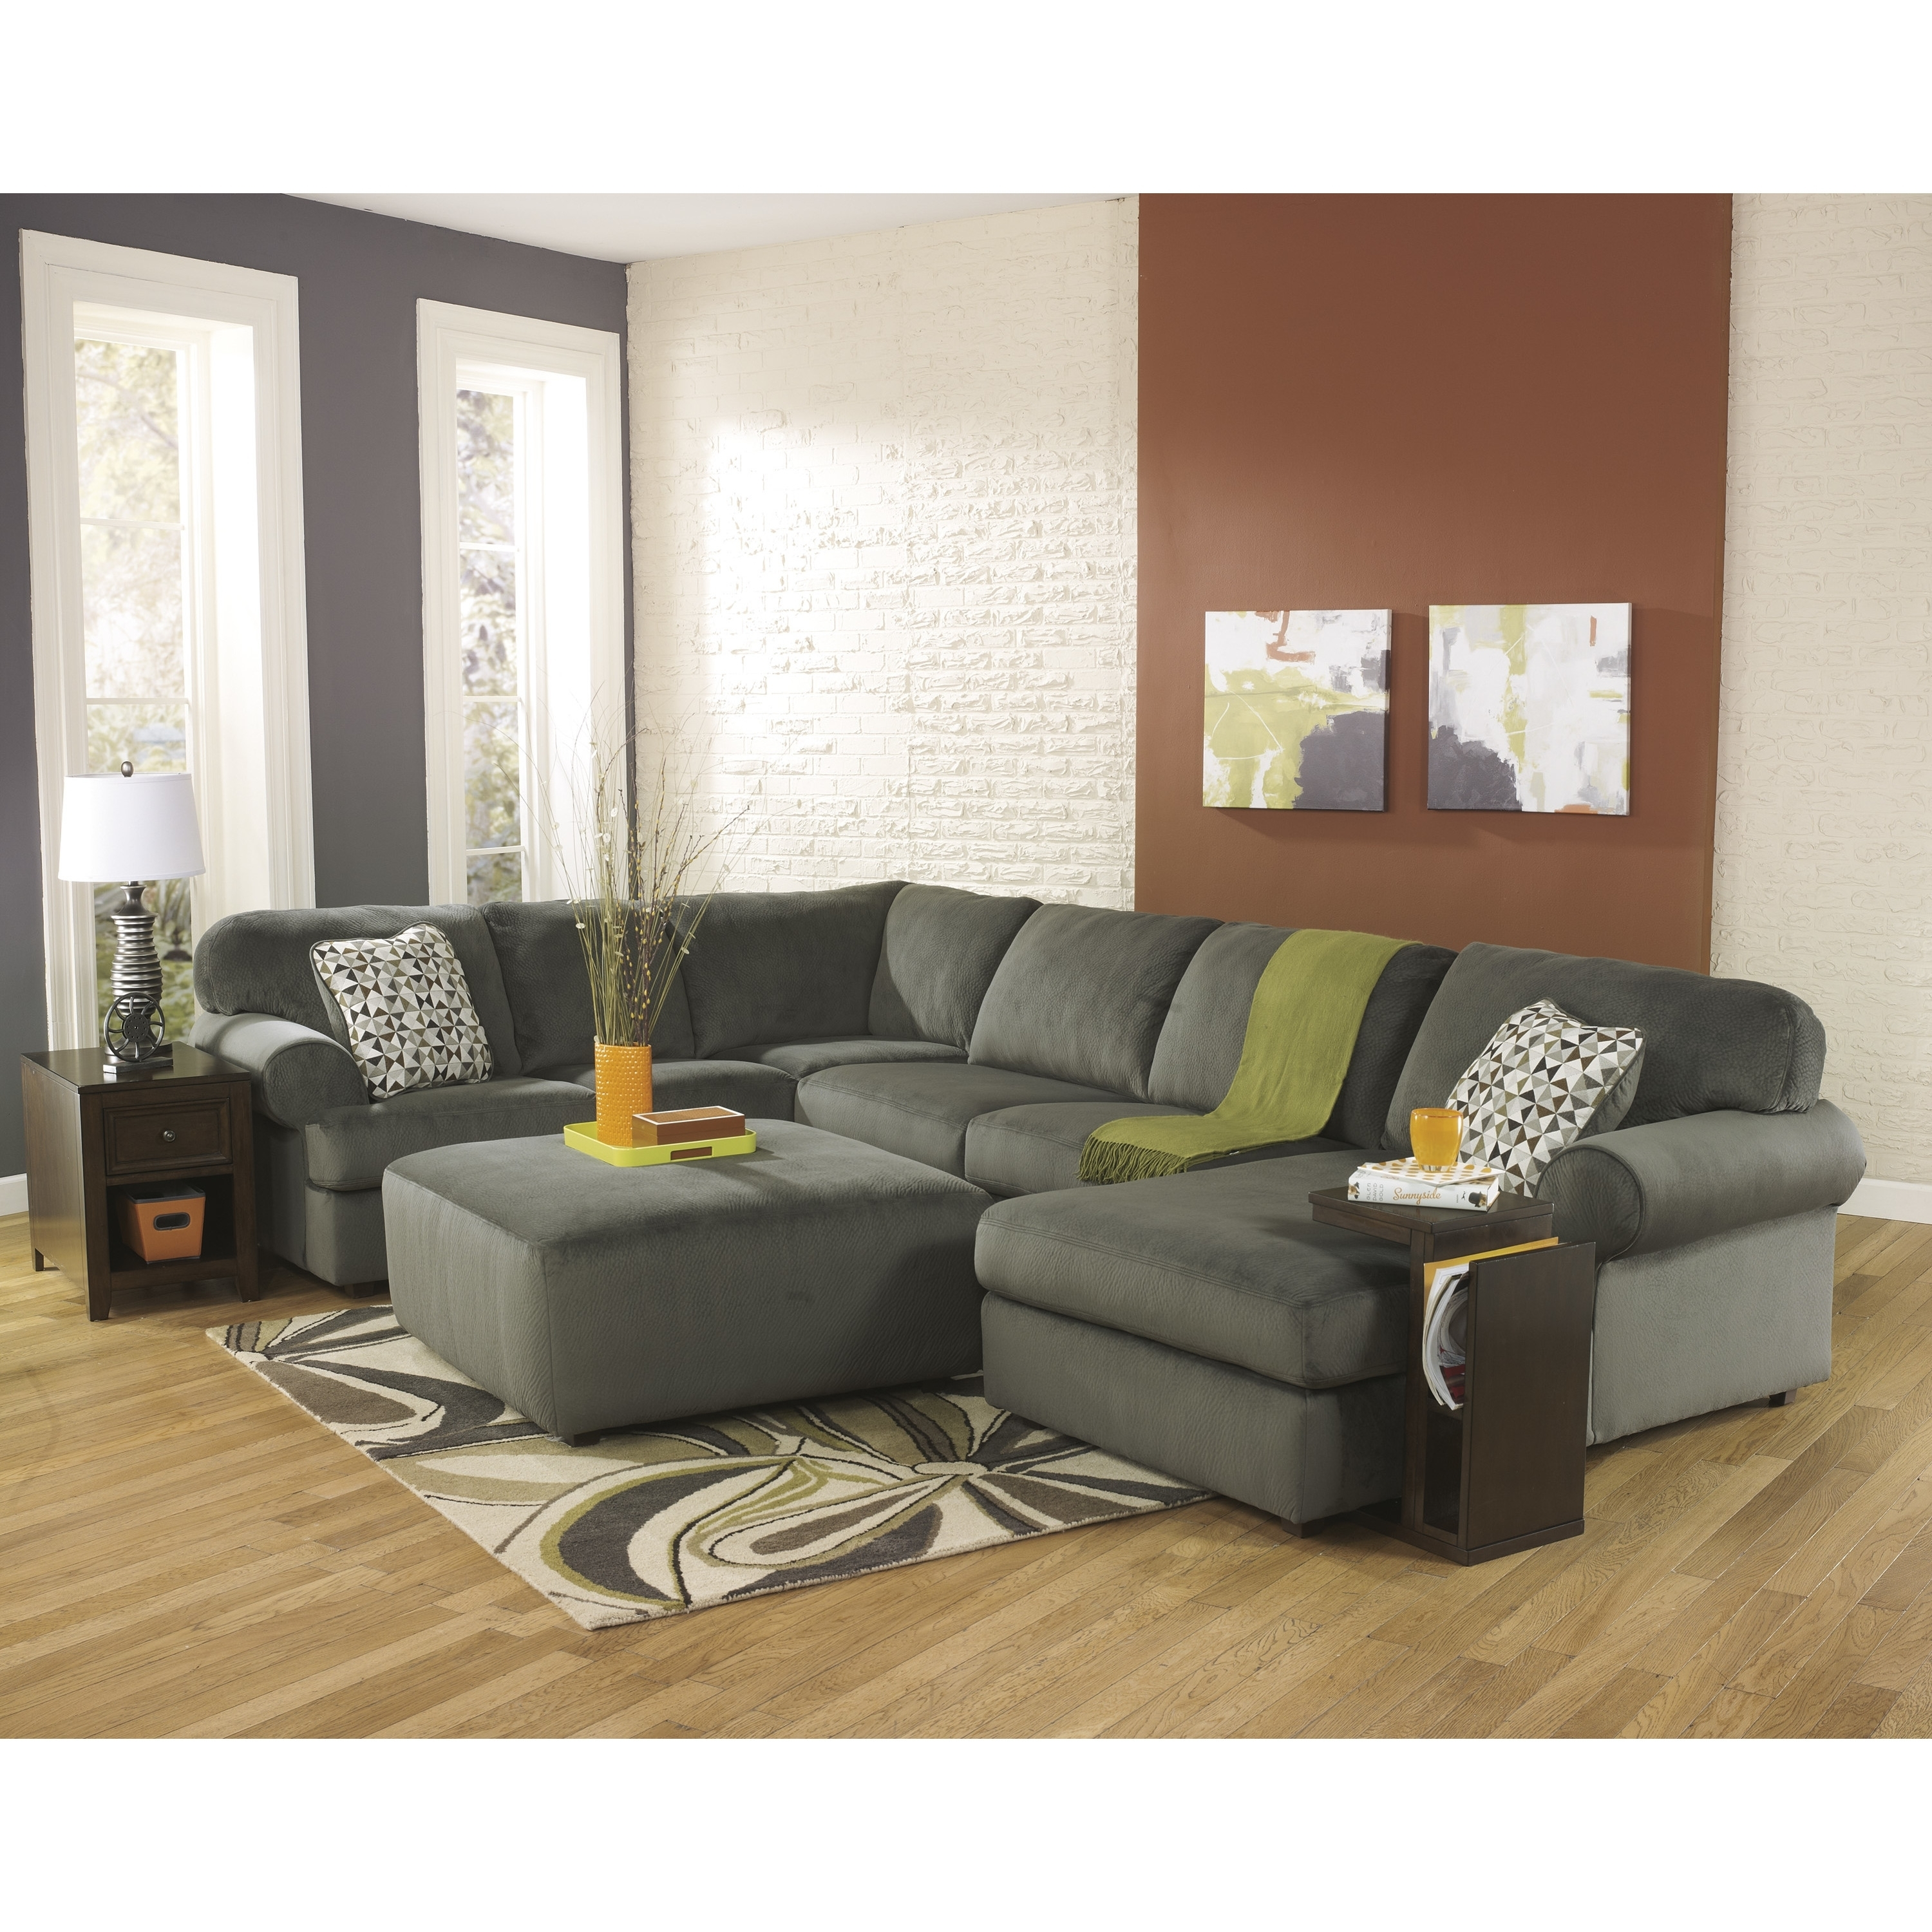 Sears Sectional Sleeper Sofa • Sectional Sofa regarding Craftsman Sectional Sofas (Image 8 of 10)